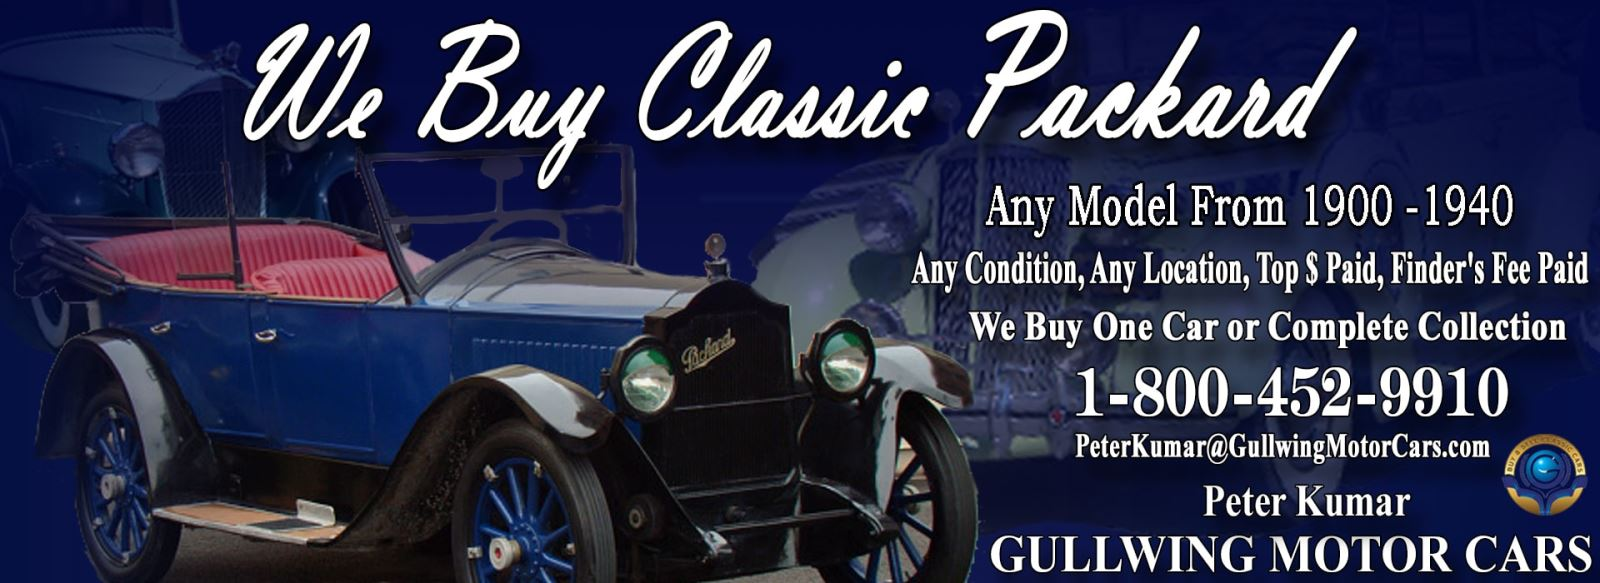 Classic Packard for sale, we buy vintage Packard. Call Peter Kumar. Gullwing Motor